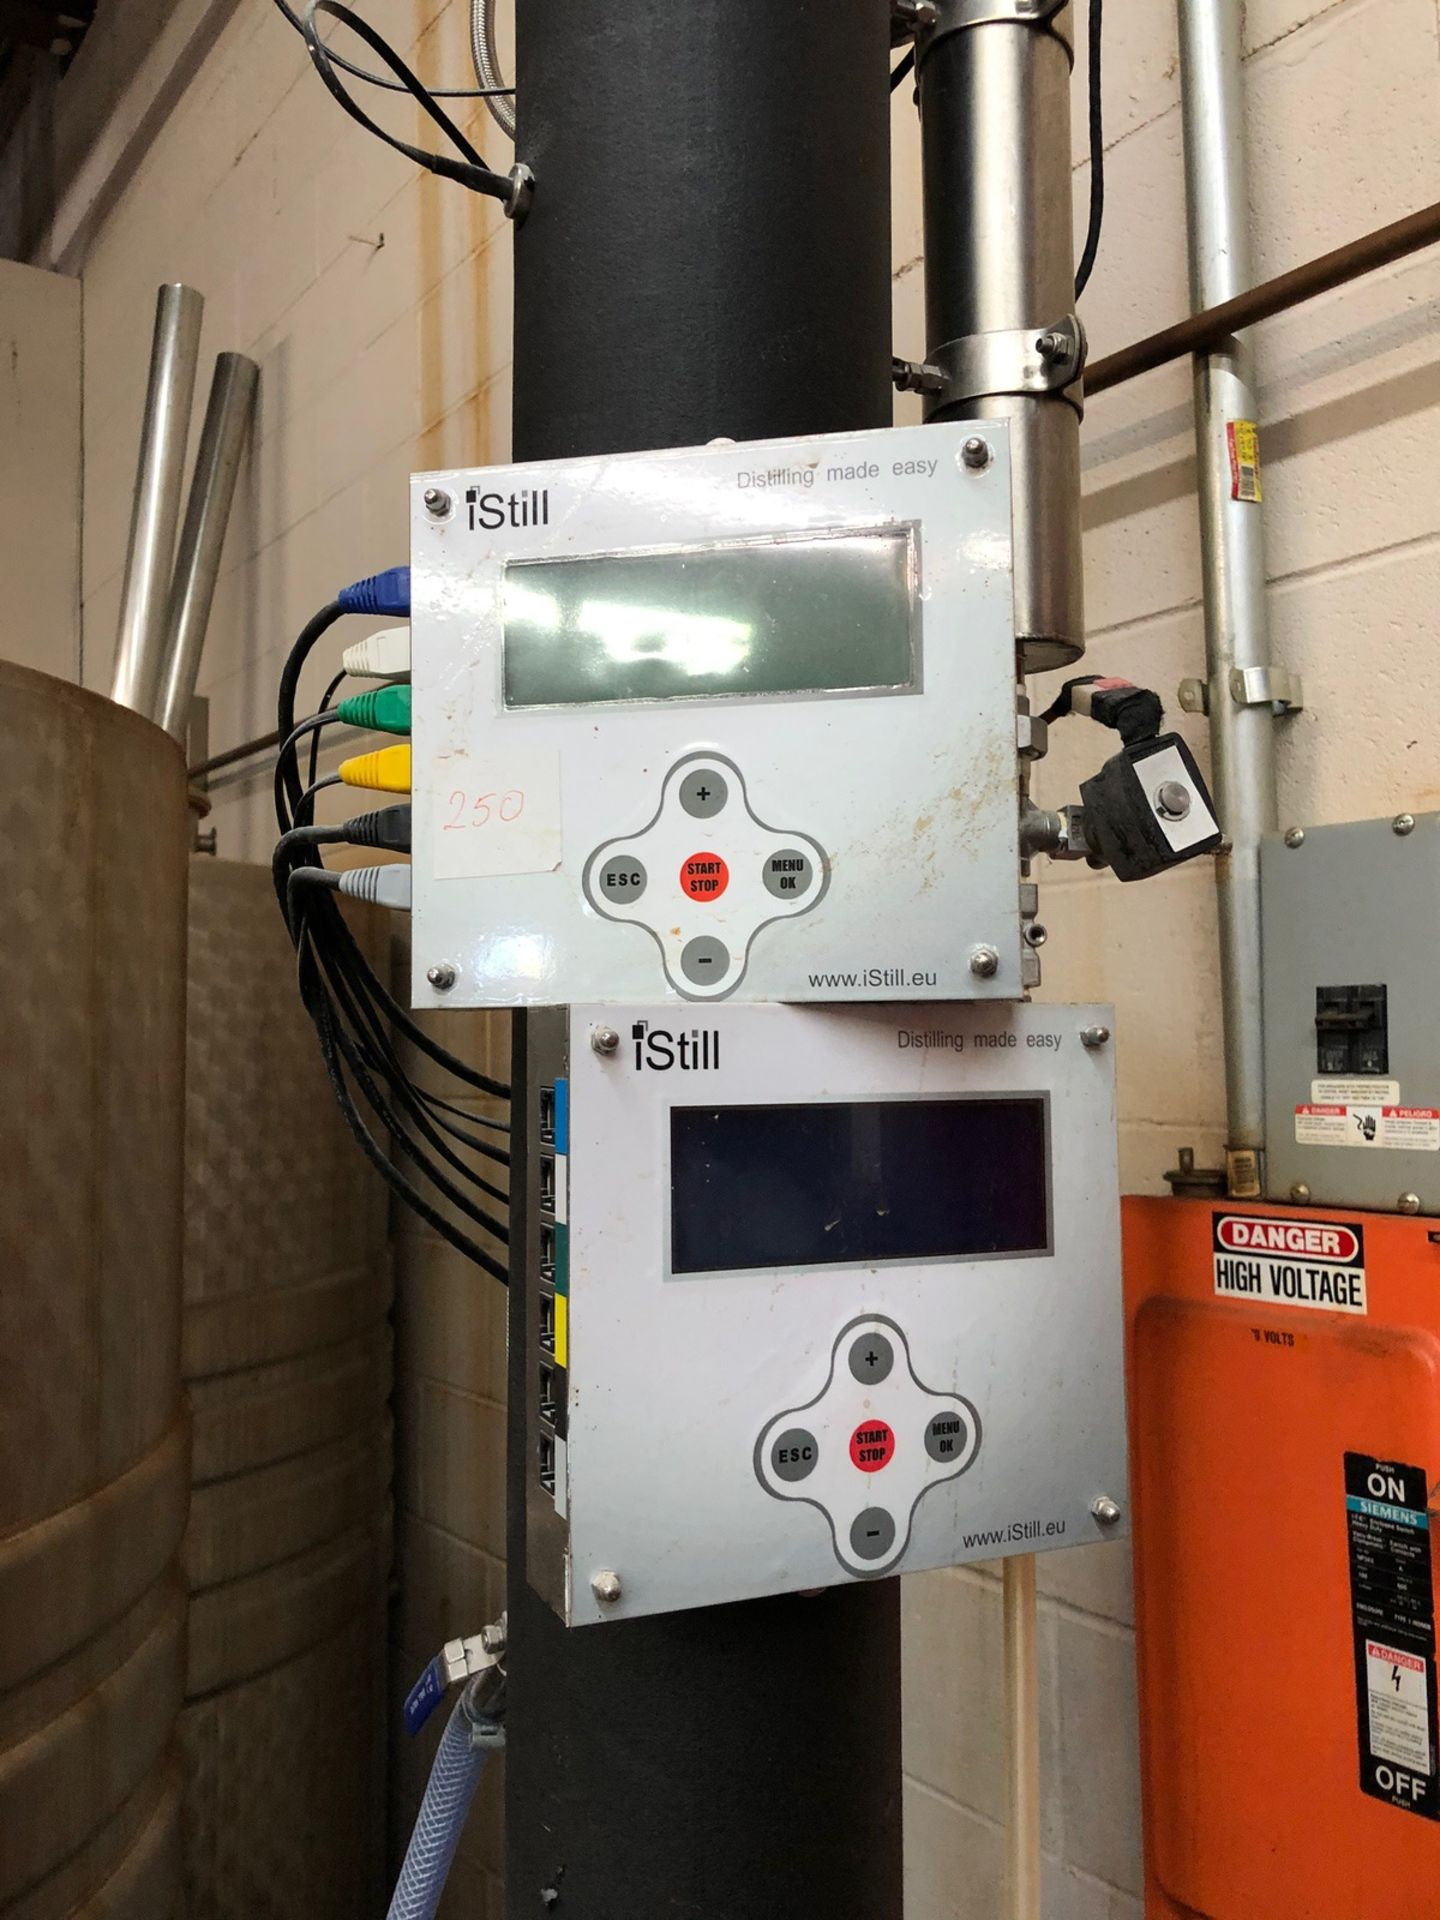 Lot 14 - 2008 iStill 250L Automated Still, Digital Controls, S/N: 2502013018 | Sub to Bulk | Rig Fee: $200